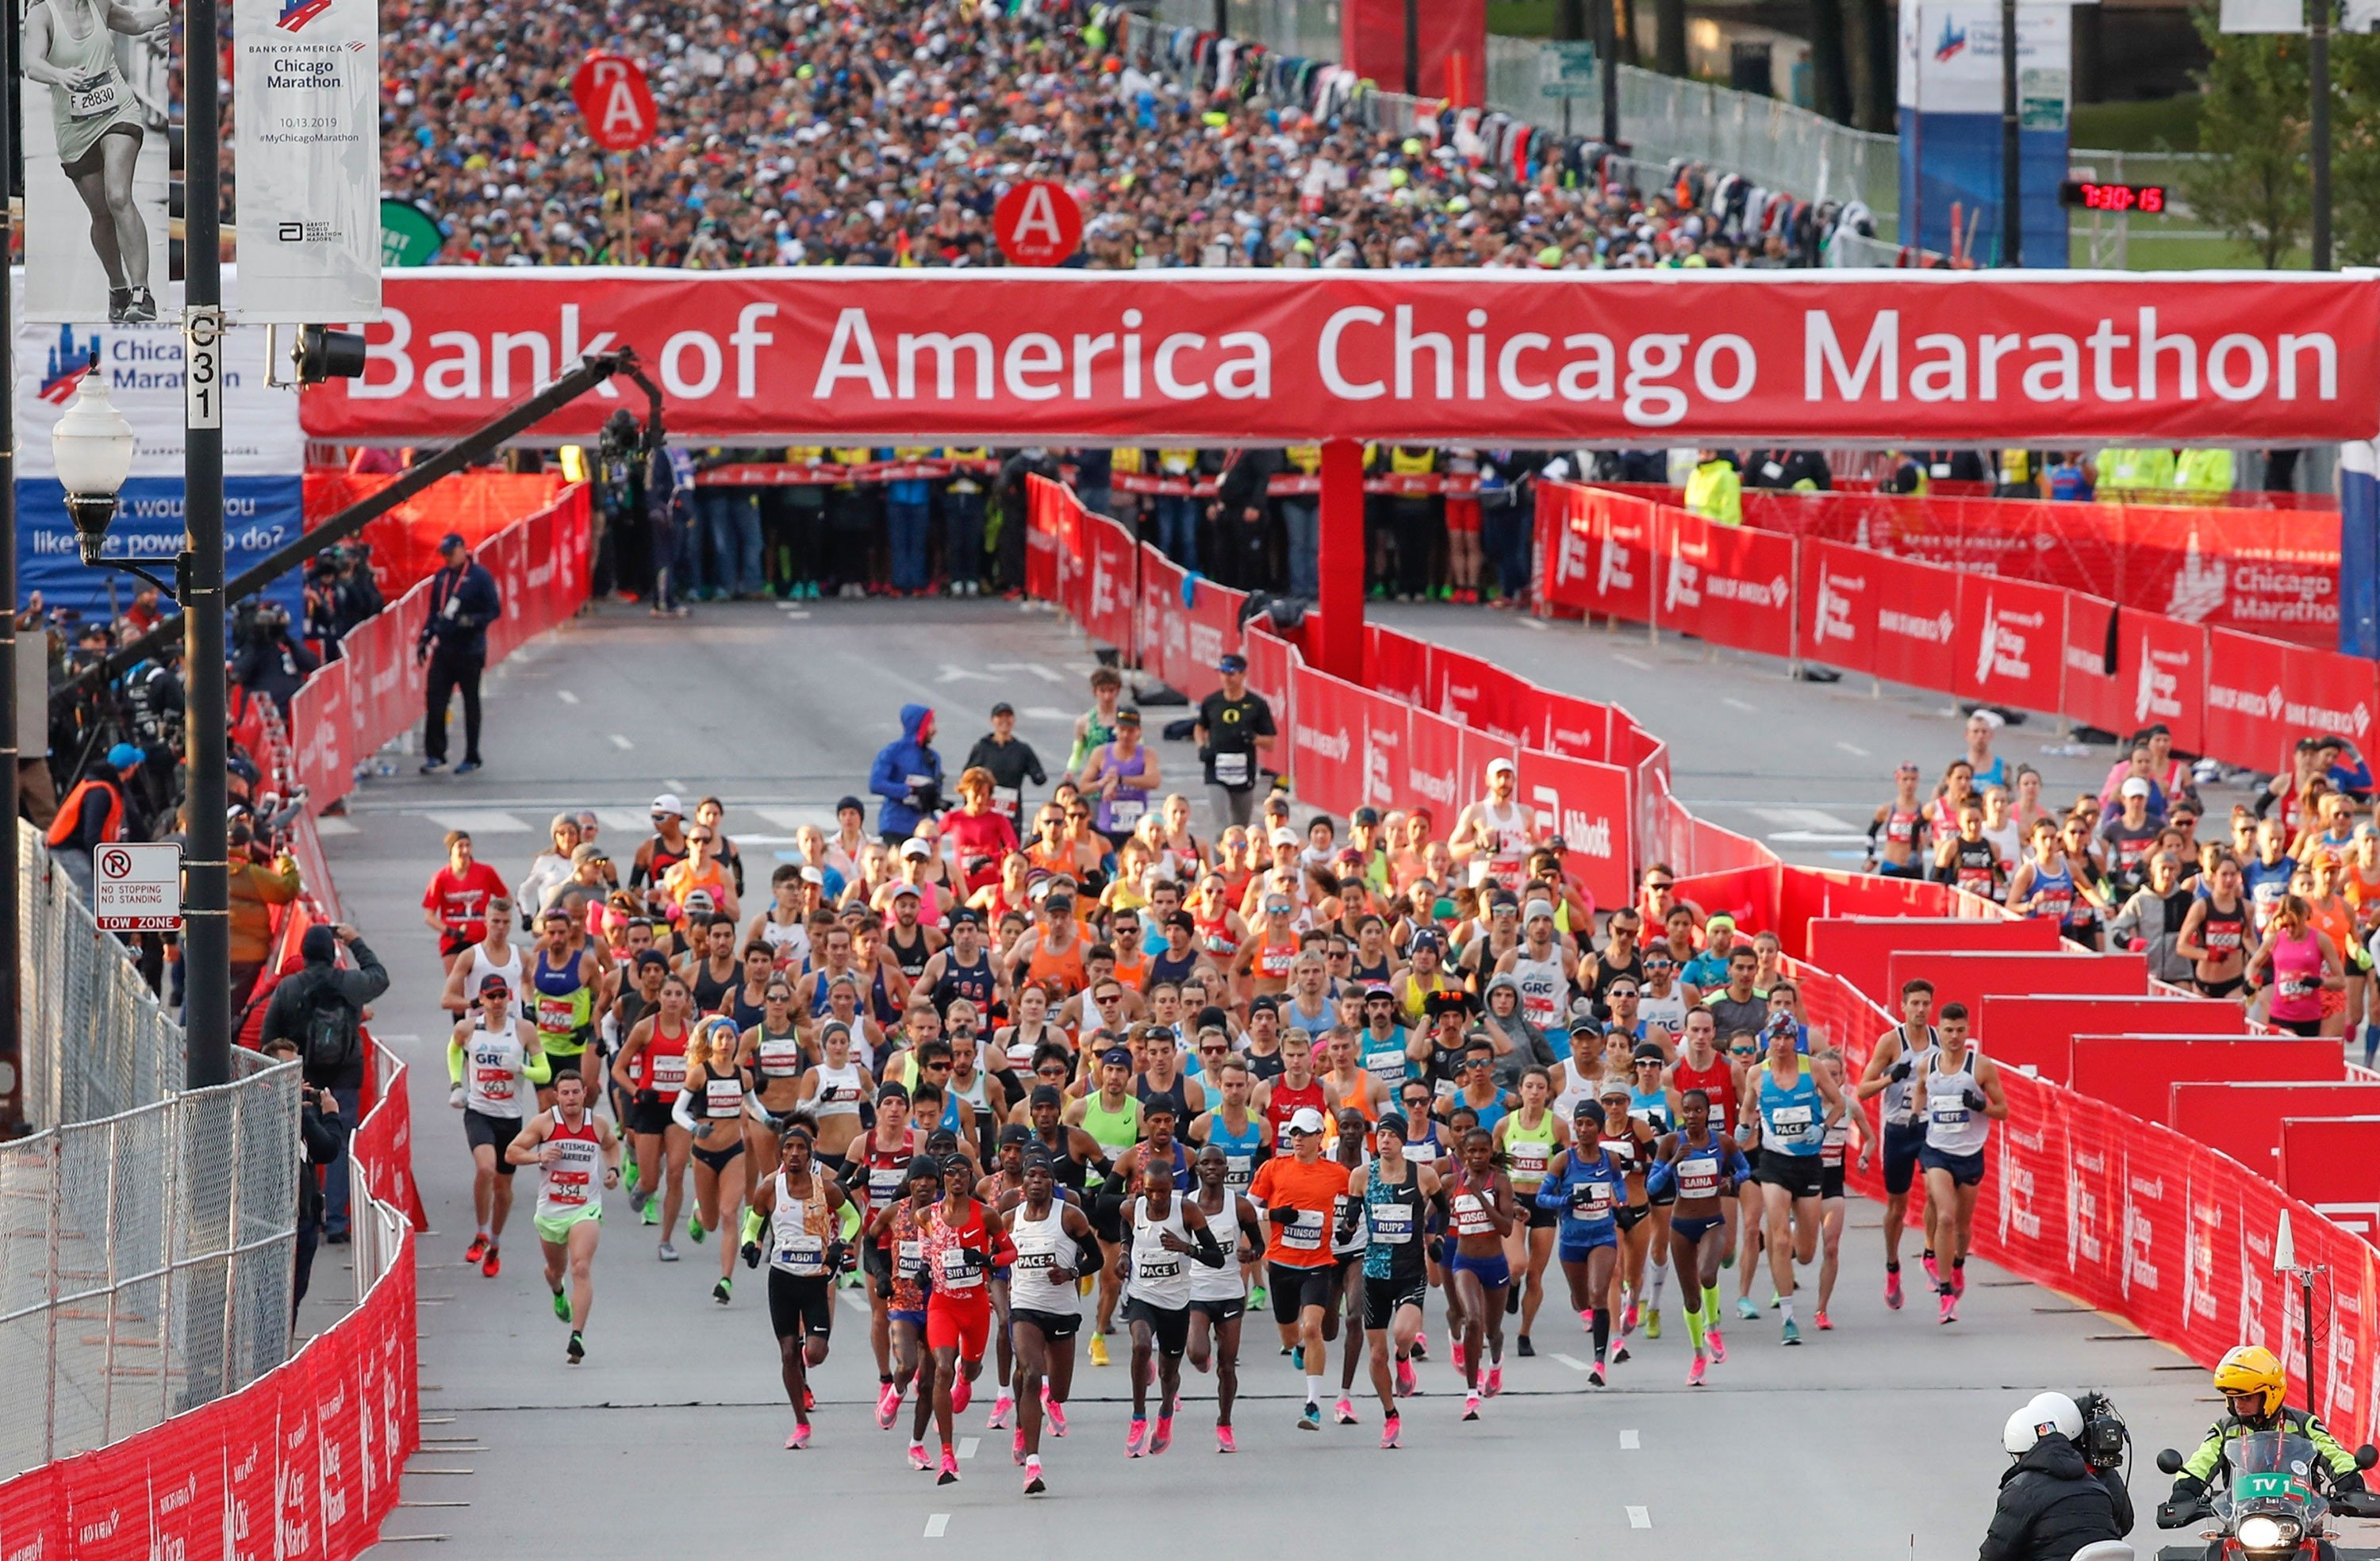 Kenya's Brigid Kosgei destroys women's world record at Chicago Marathon